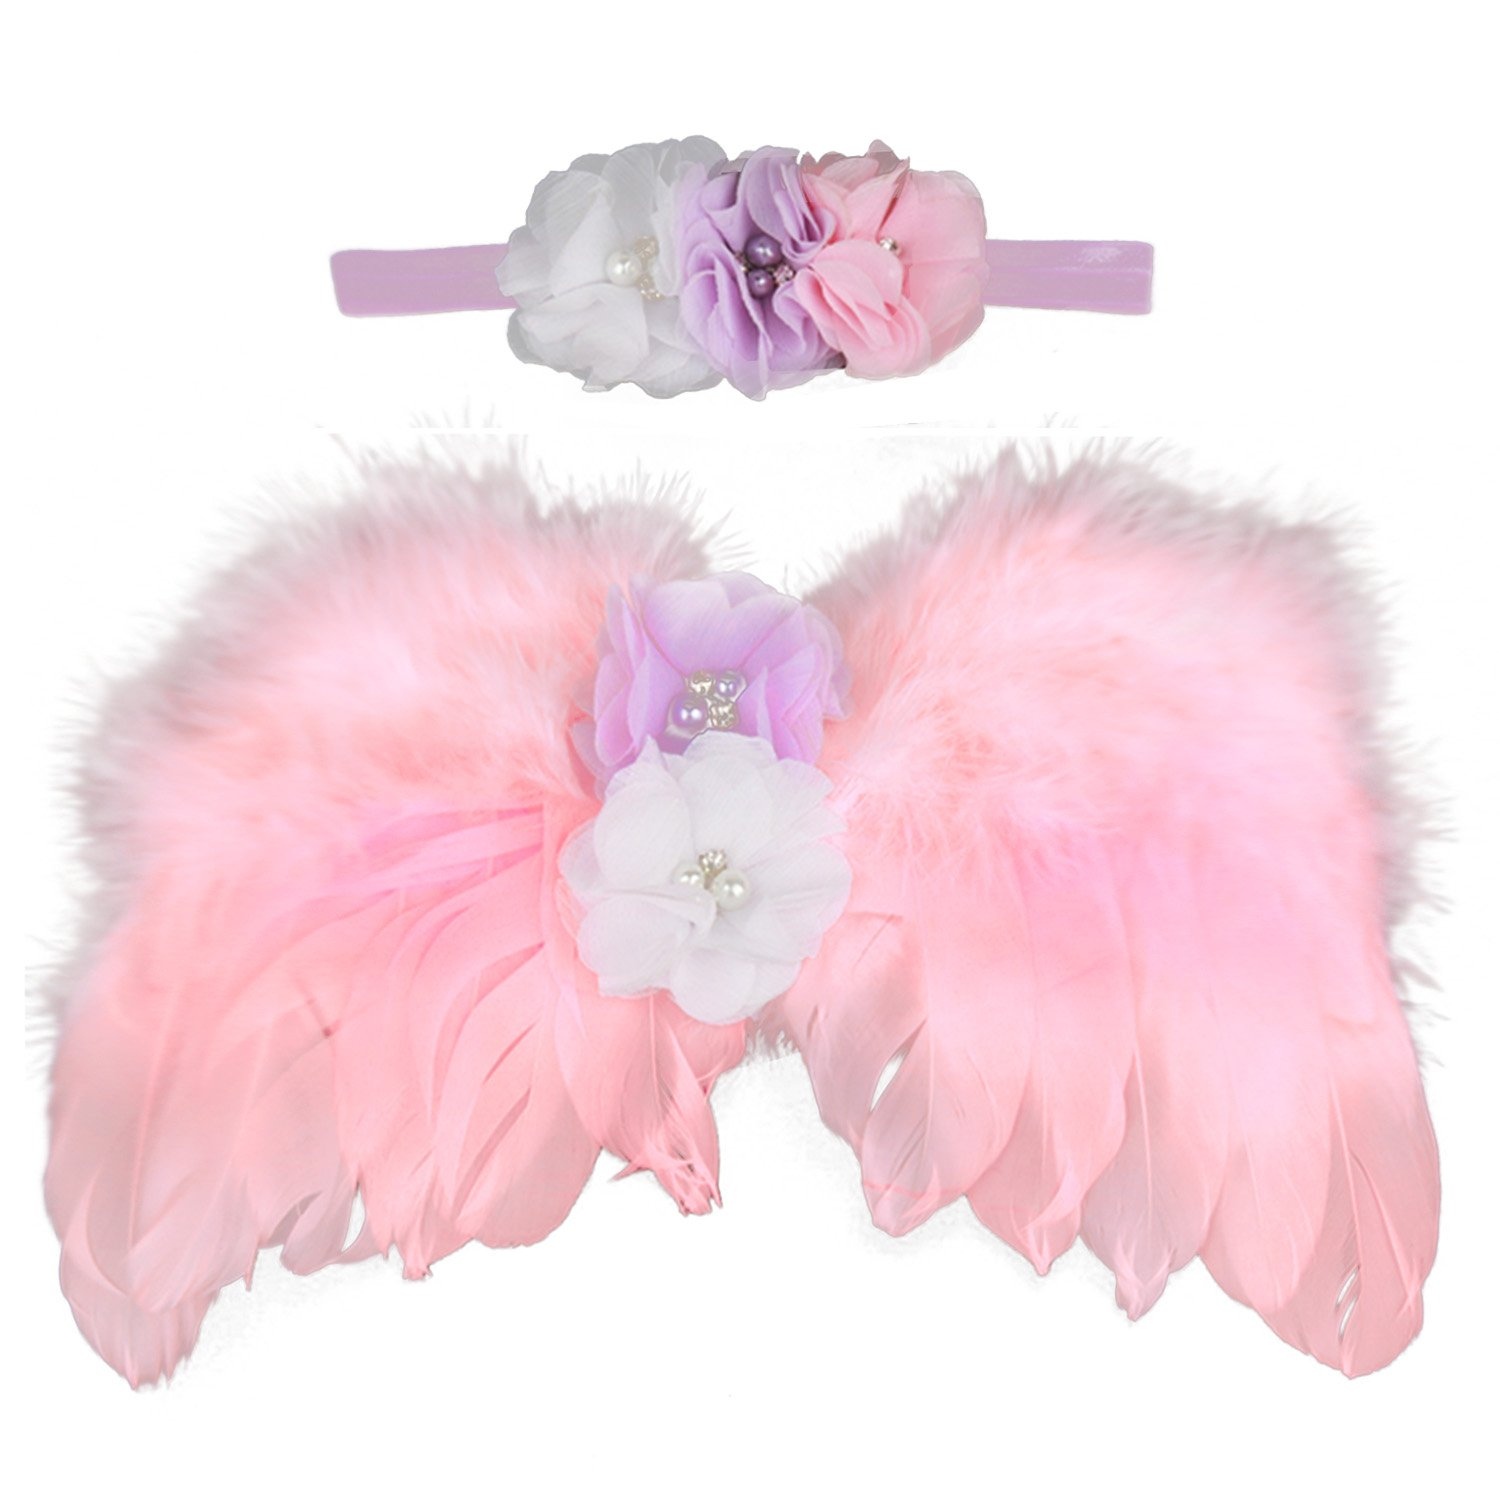 Elisona-Lovely Imitation Angel Wings Newborn Baby Photography Props Costume Clothing with Headband Unisex for Baby Girls Boys Multi-flower Style